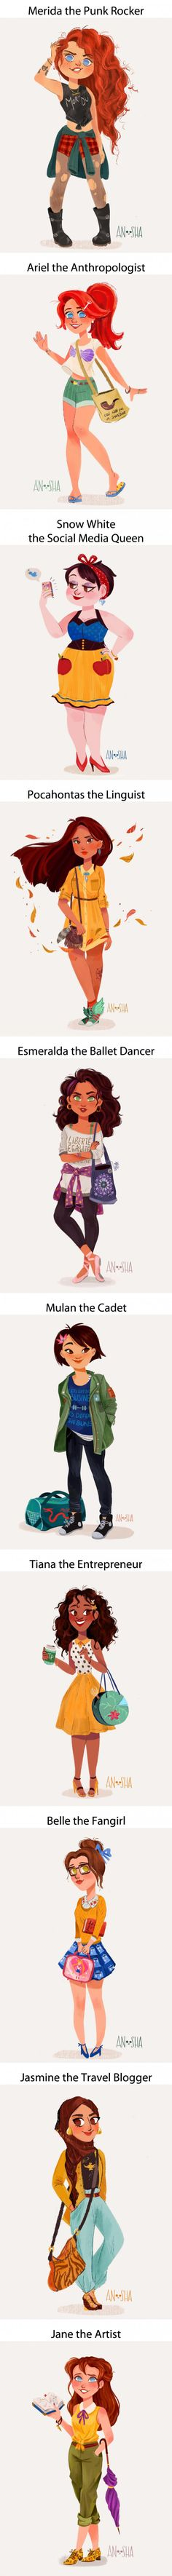 If Disney Princess Lived In The Century As Modern Day Girls (by Anoosha Syed). So beautiful I wnat to see more of them disney art Walt Disney, Disney Pixar, Disney Fan Art, Cute Disney, Disney Girls, Disney And Dreamworks, Disney Magic, Disney Movies, Funny Disney